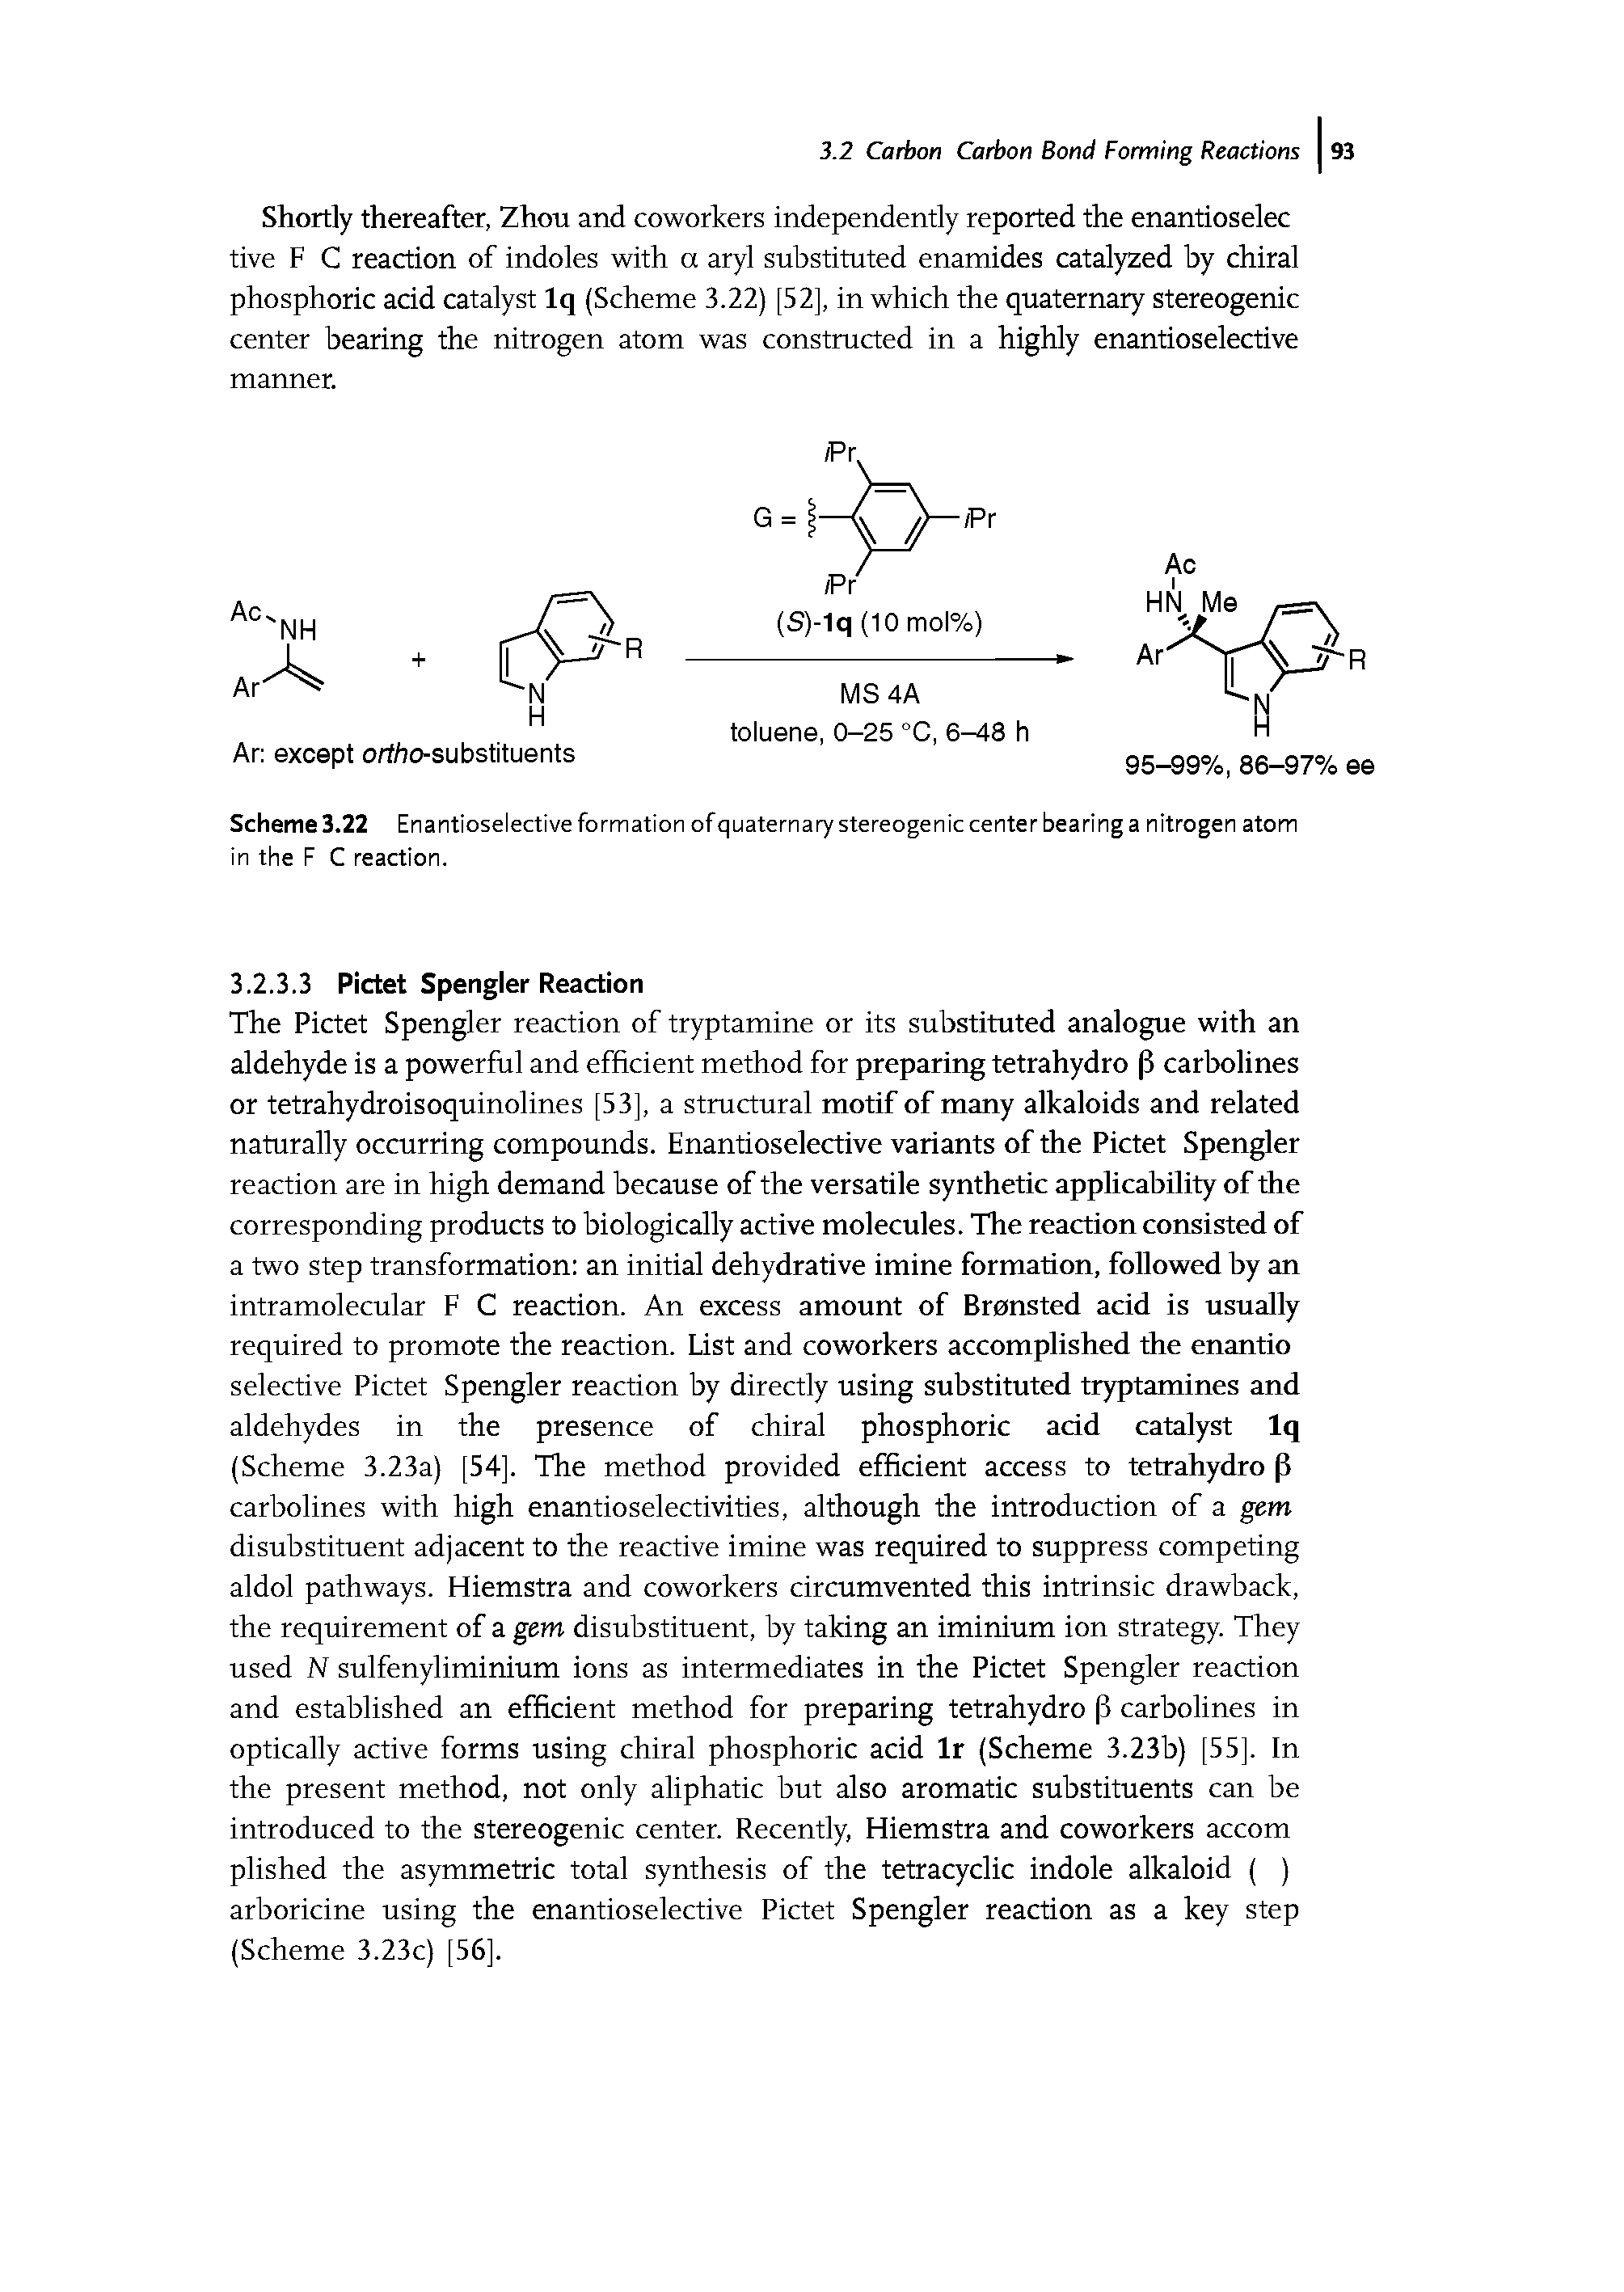 "Scheme 3.22 <a href=""/info/enantioselectivity_and_formation"">Enantioselective formation</a> of quaternary stereogenic center bearing a <a href=""/info/nitrogen_atom"">nitrogen atom</a> in the F C reaction."